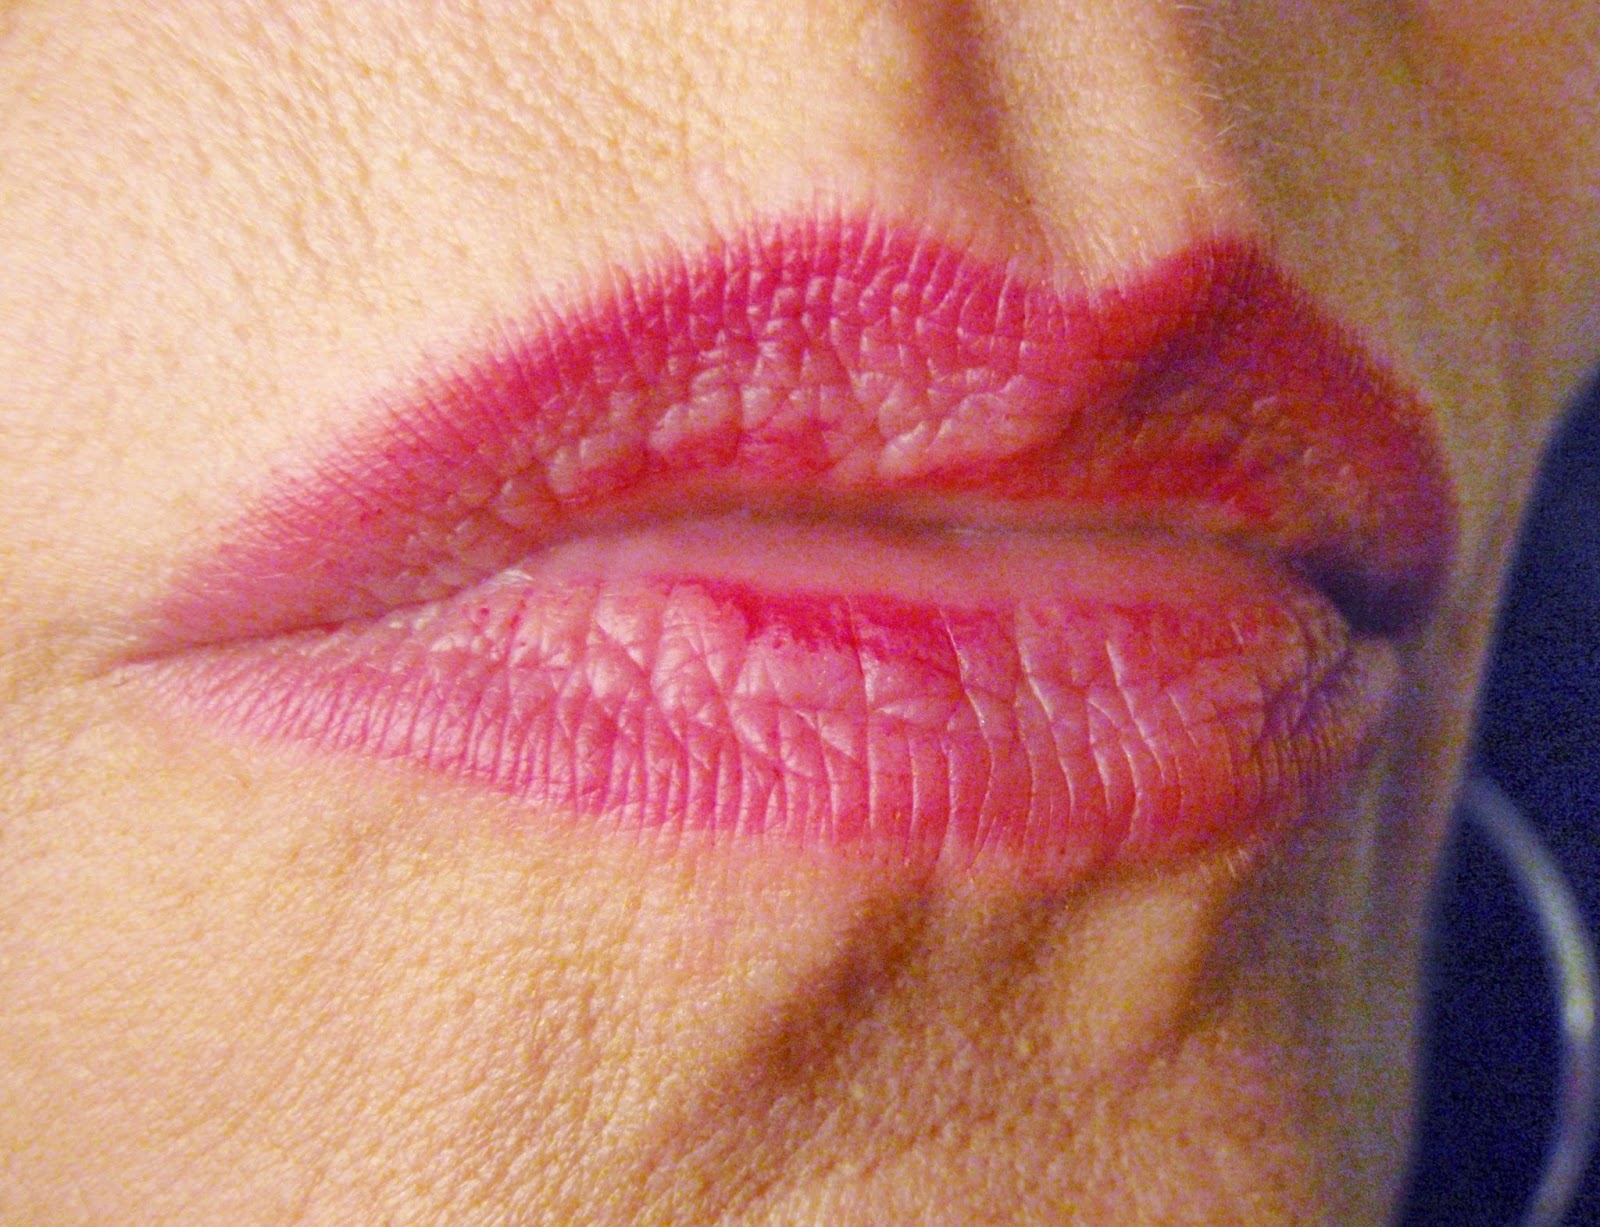 josie maran lipstain on lips at end of day